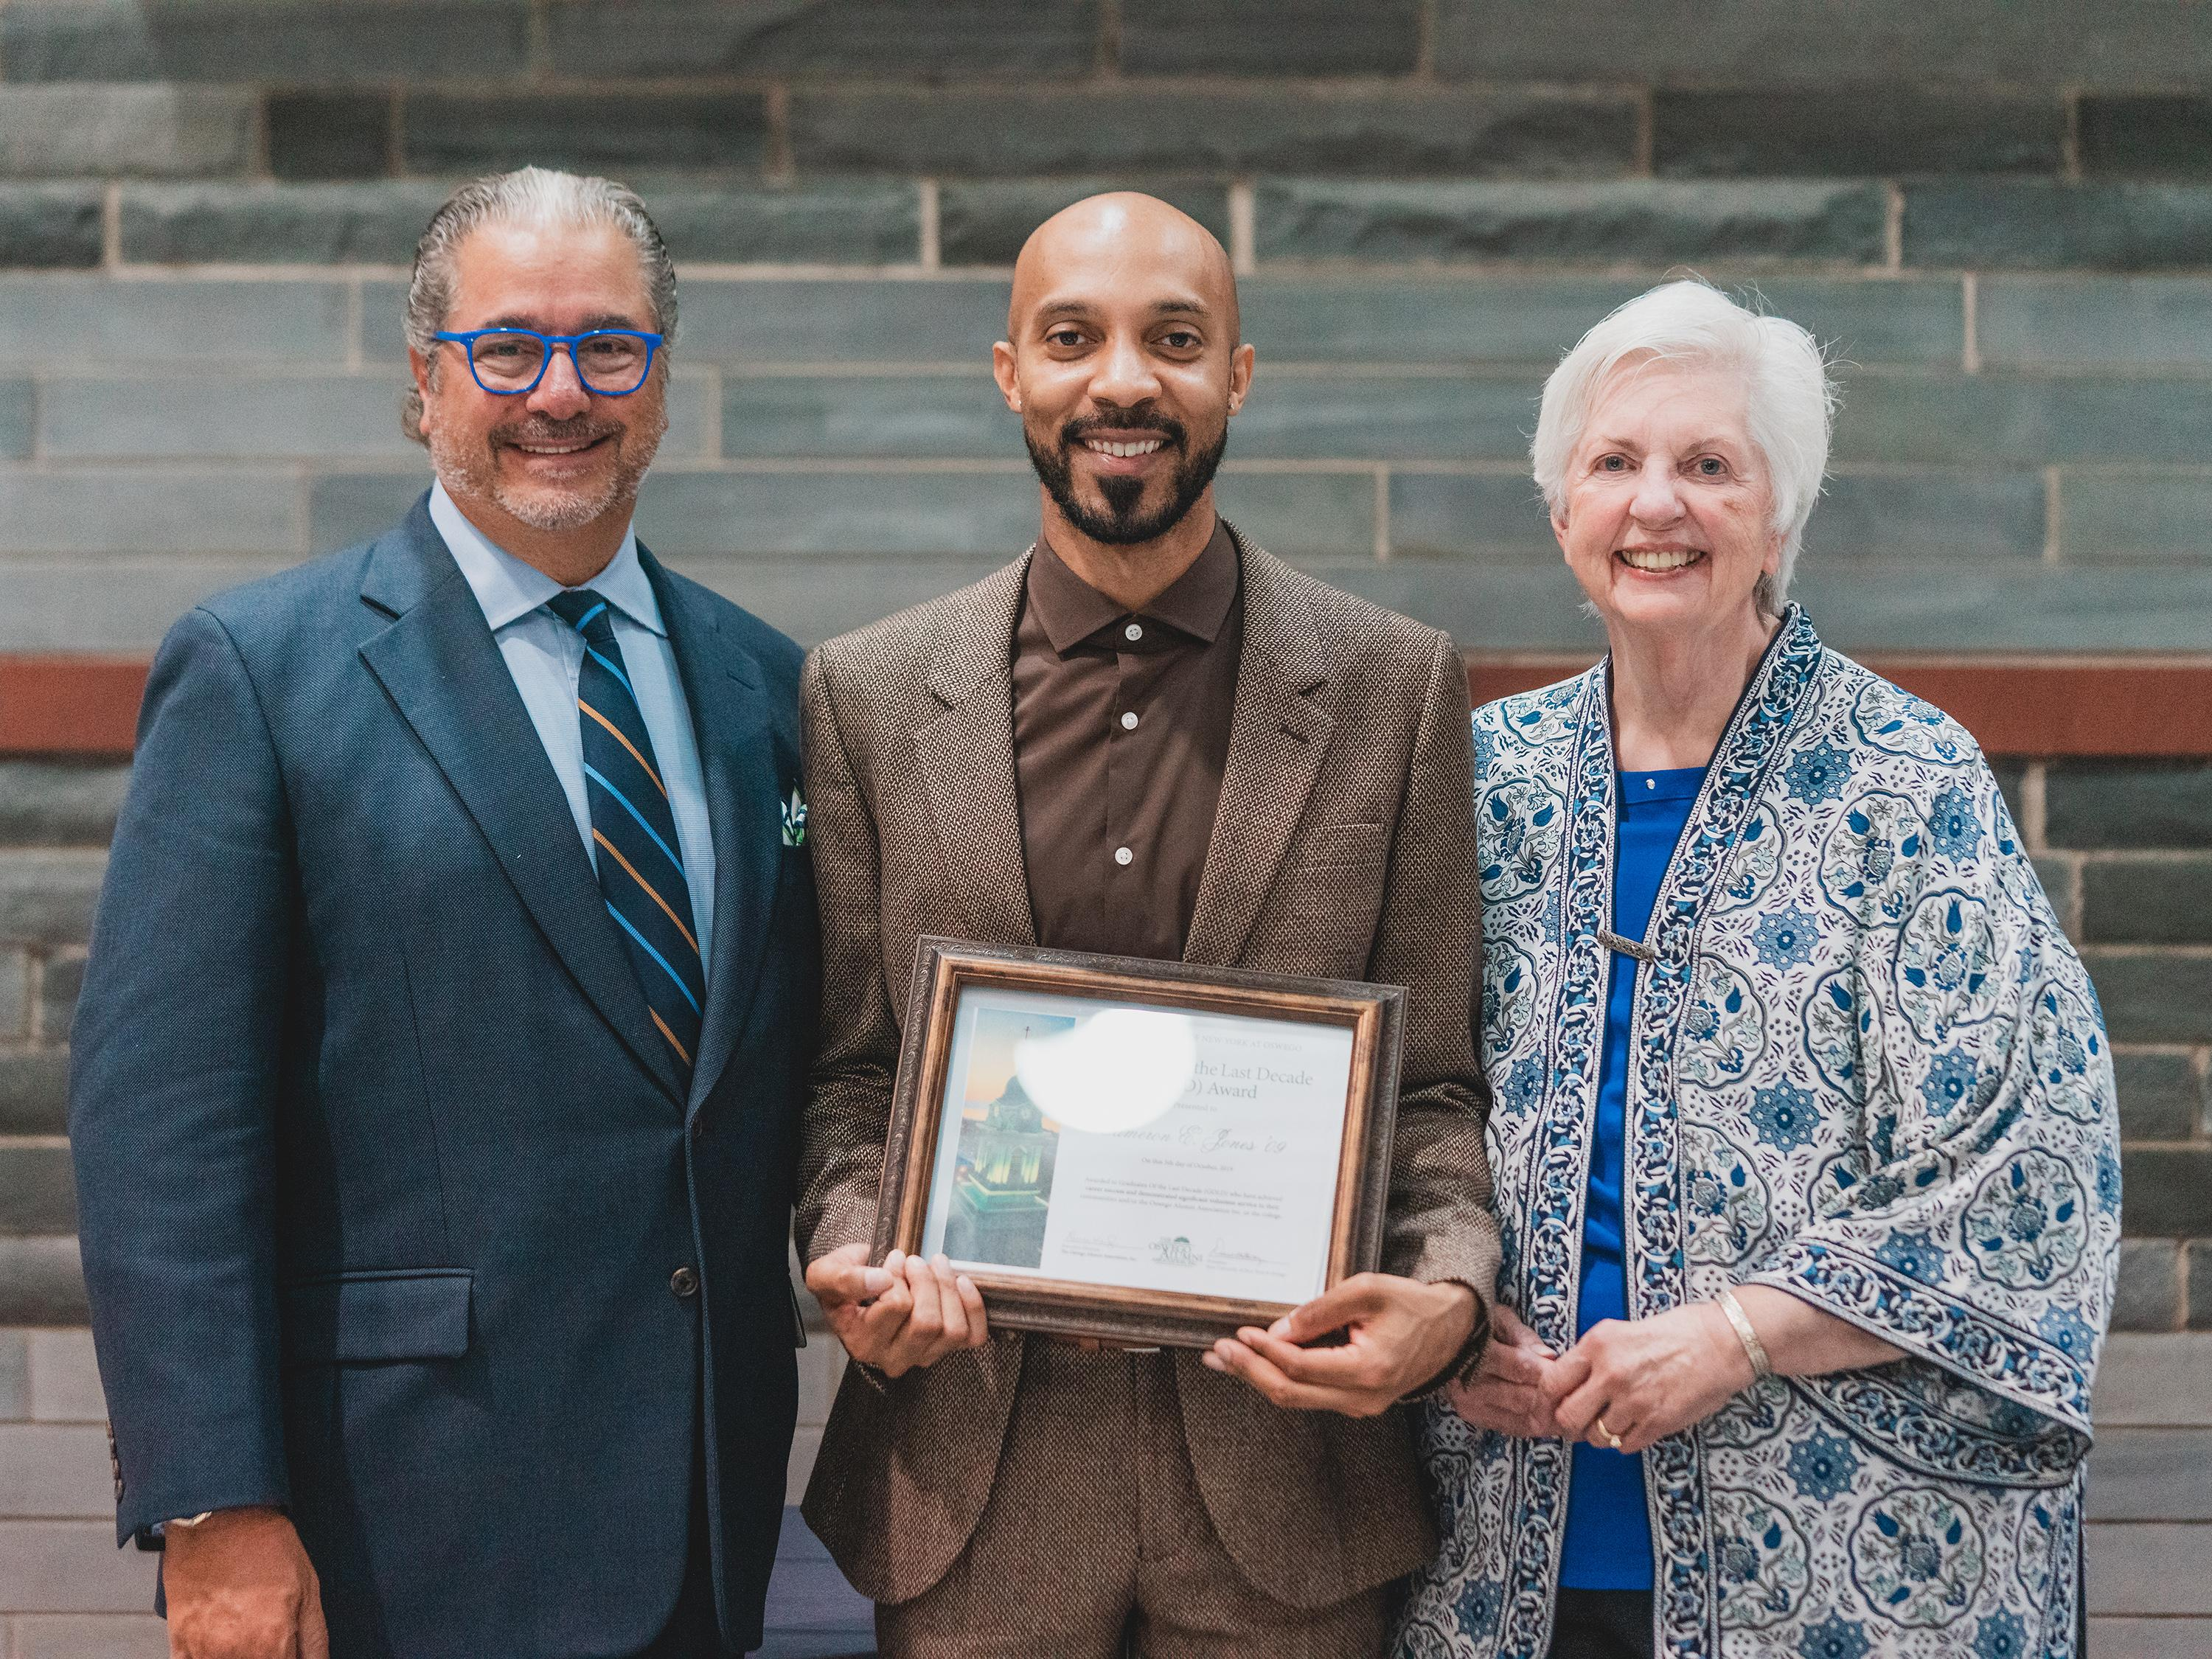 Three-time Emmy Award-winning producer Cameron Jones (center) of SUNY Oswego's Class of 2009 was honored recently by the Oswego Alumni Association with a Graduate Of the Last Decade Alumni Award